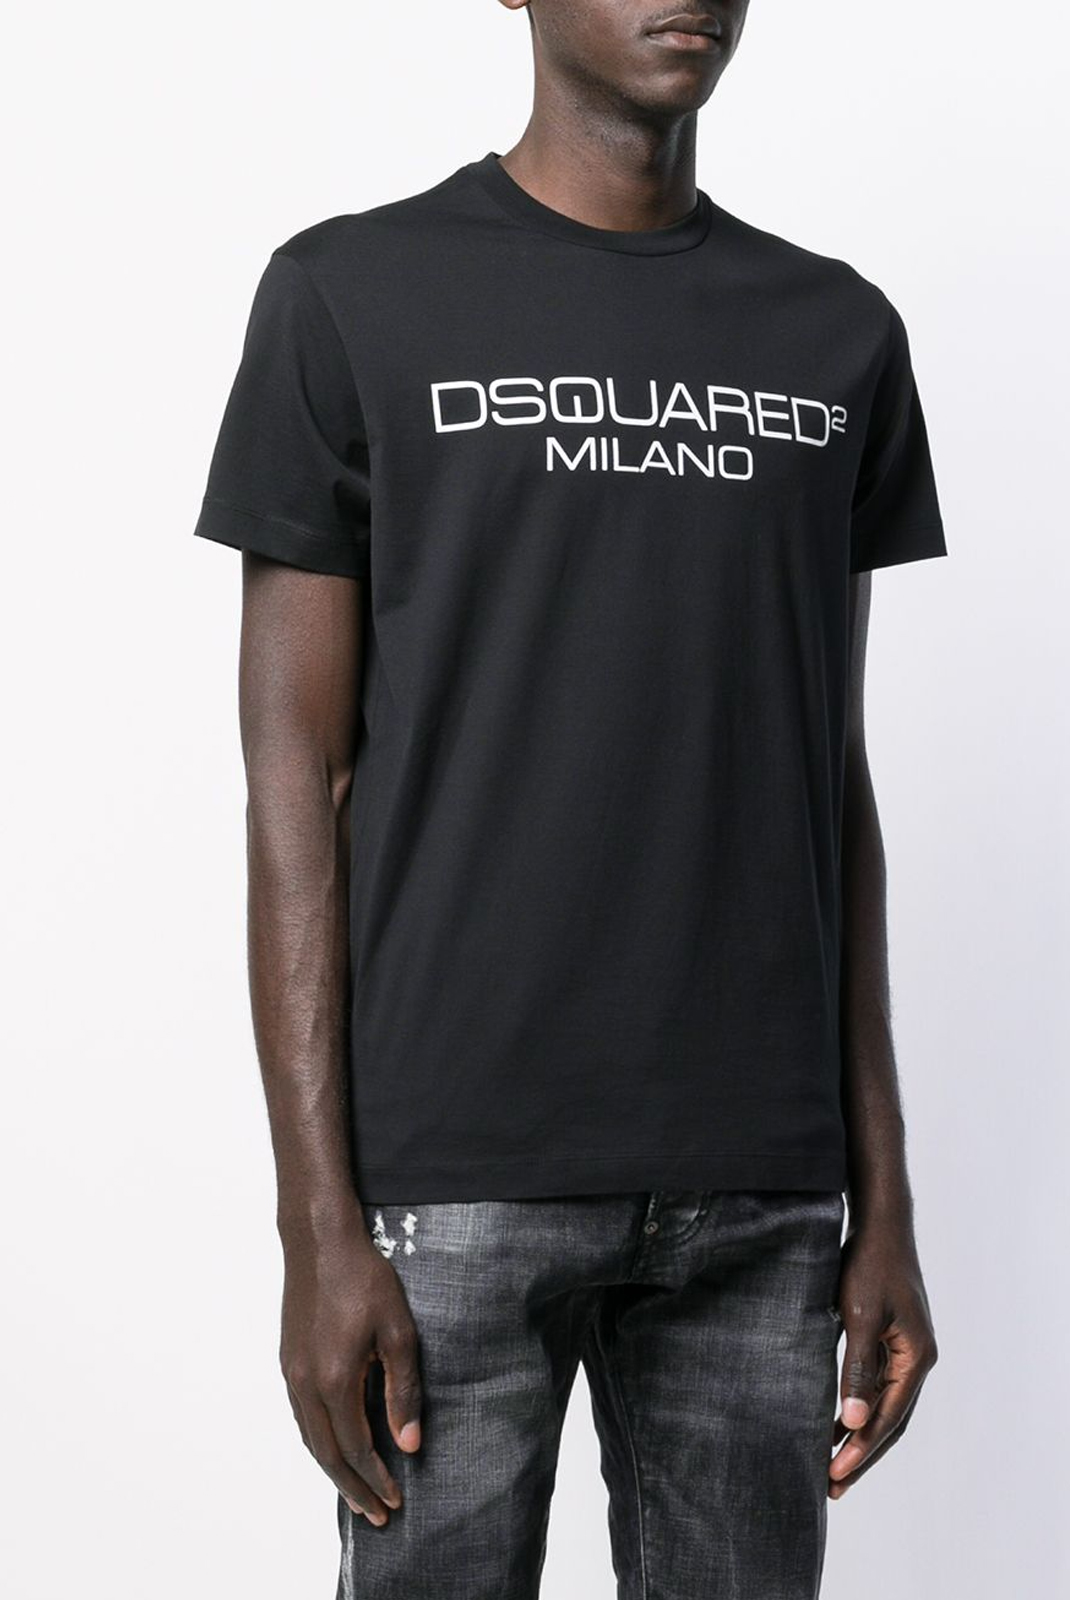 Tee-shirts  Dsquared2 S74GD0644 900 BLACK